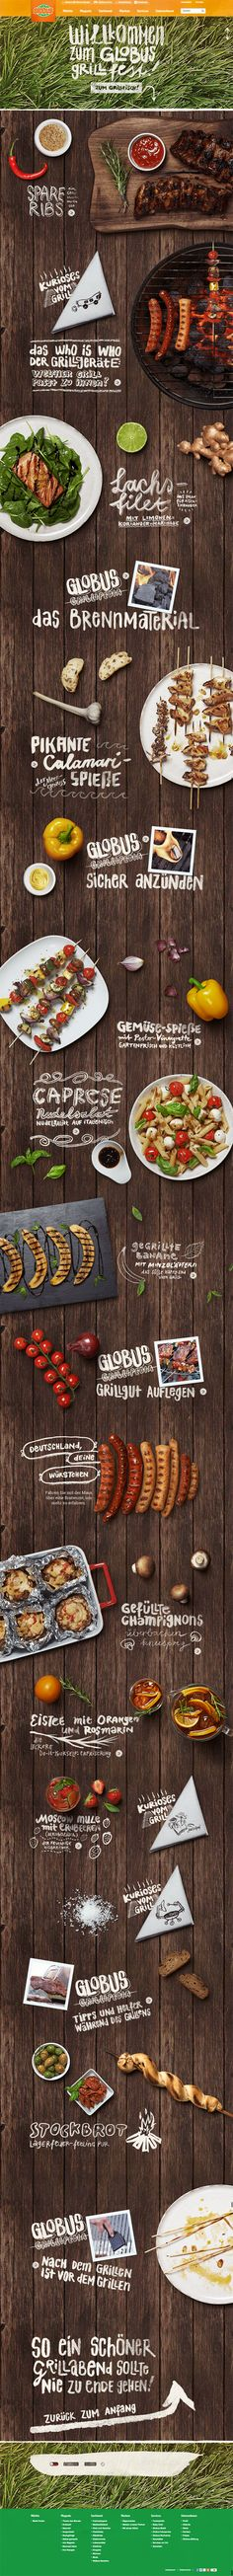 Unique Web Design, The Globus Grillfest #webdesign #design (http://www.pinterest.com/aldenchong/)